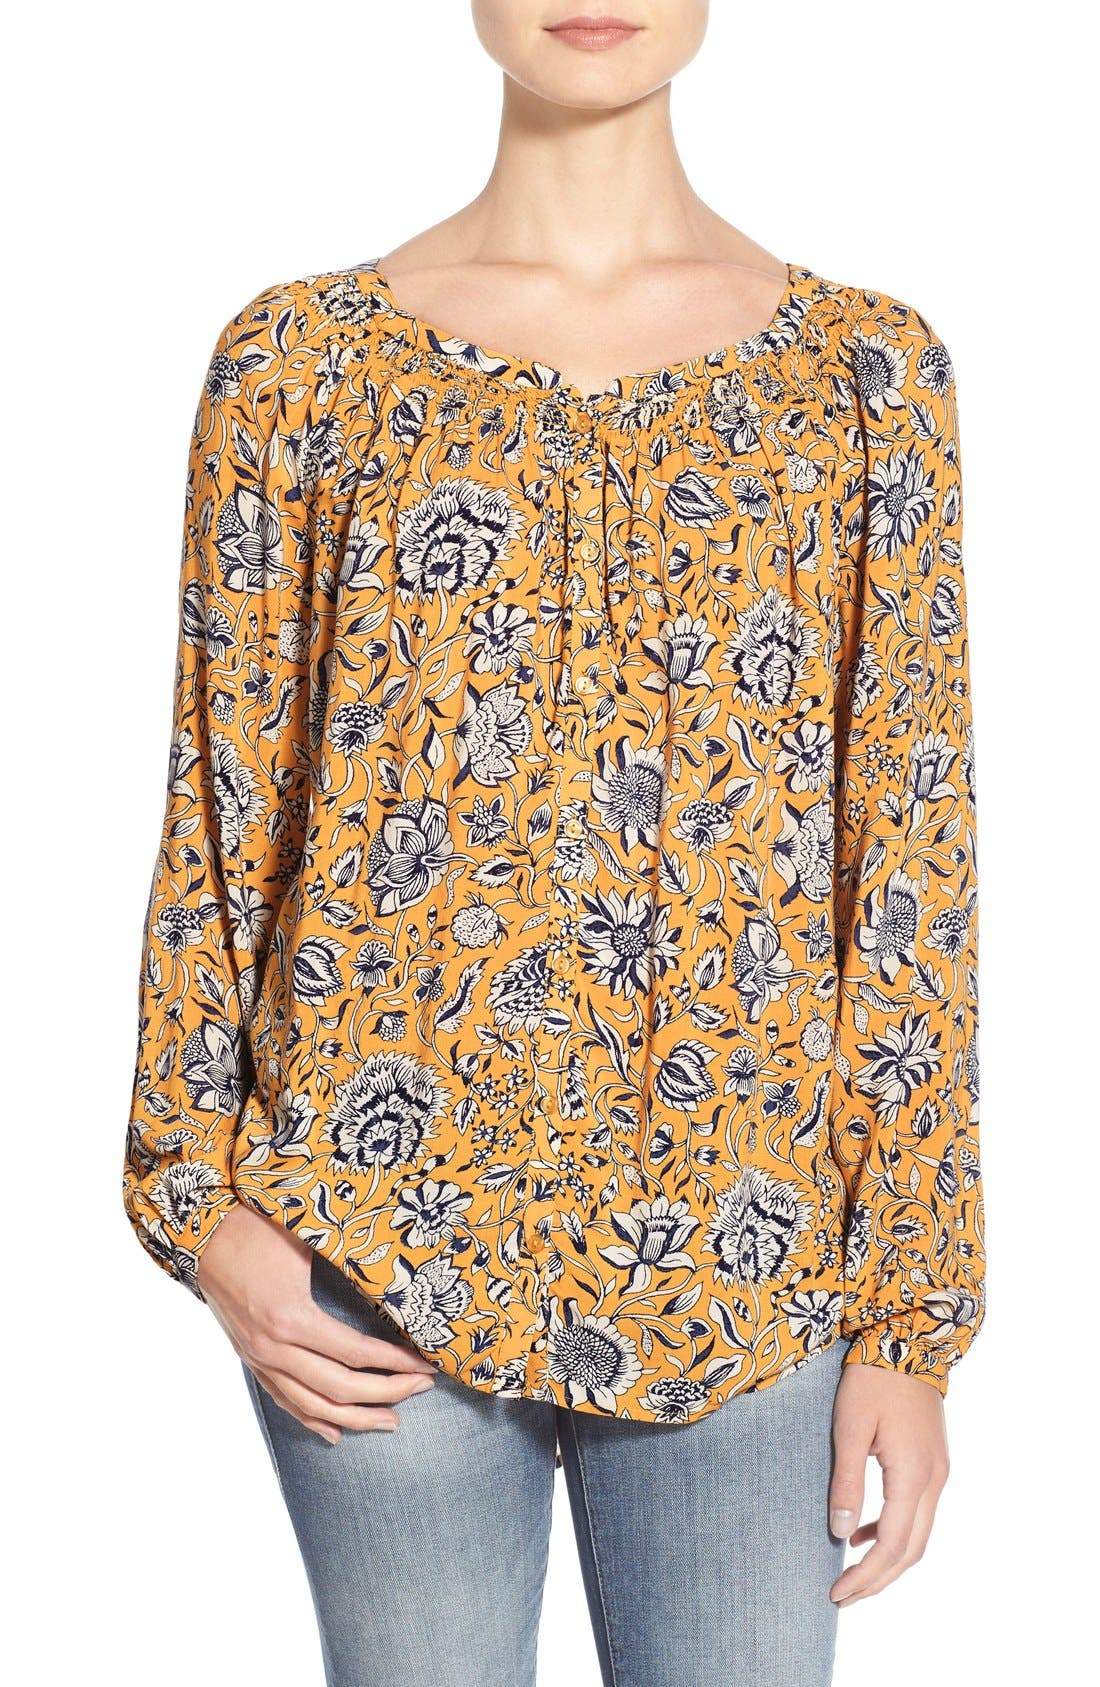 Alternate Image 1 Selected - Lucky Brand 'Jemma' Floral Print Peasant Top